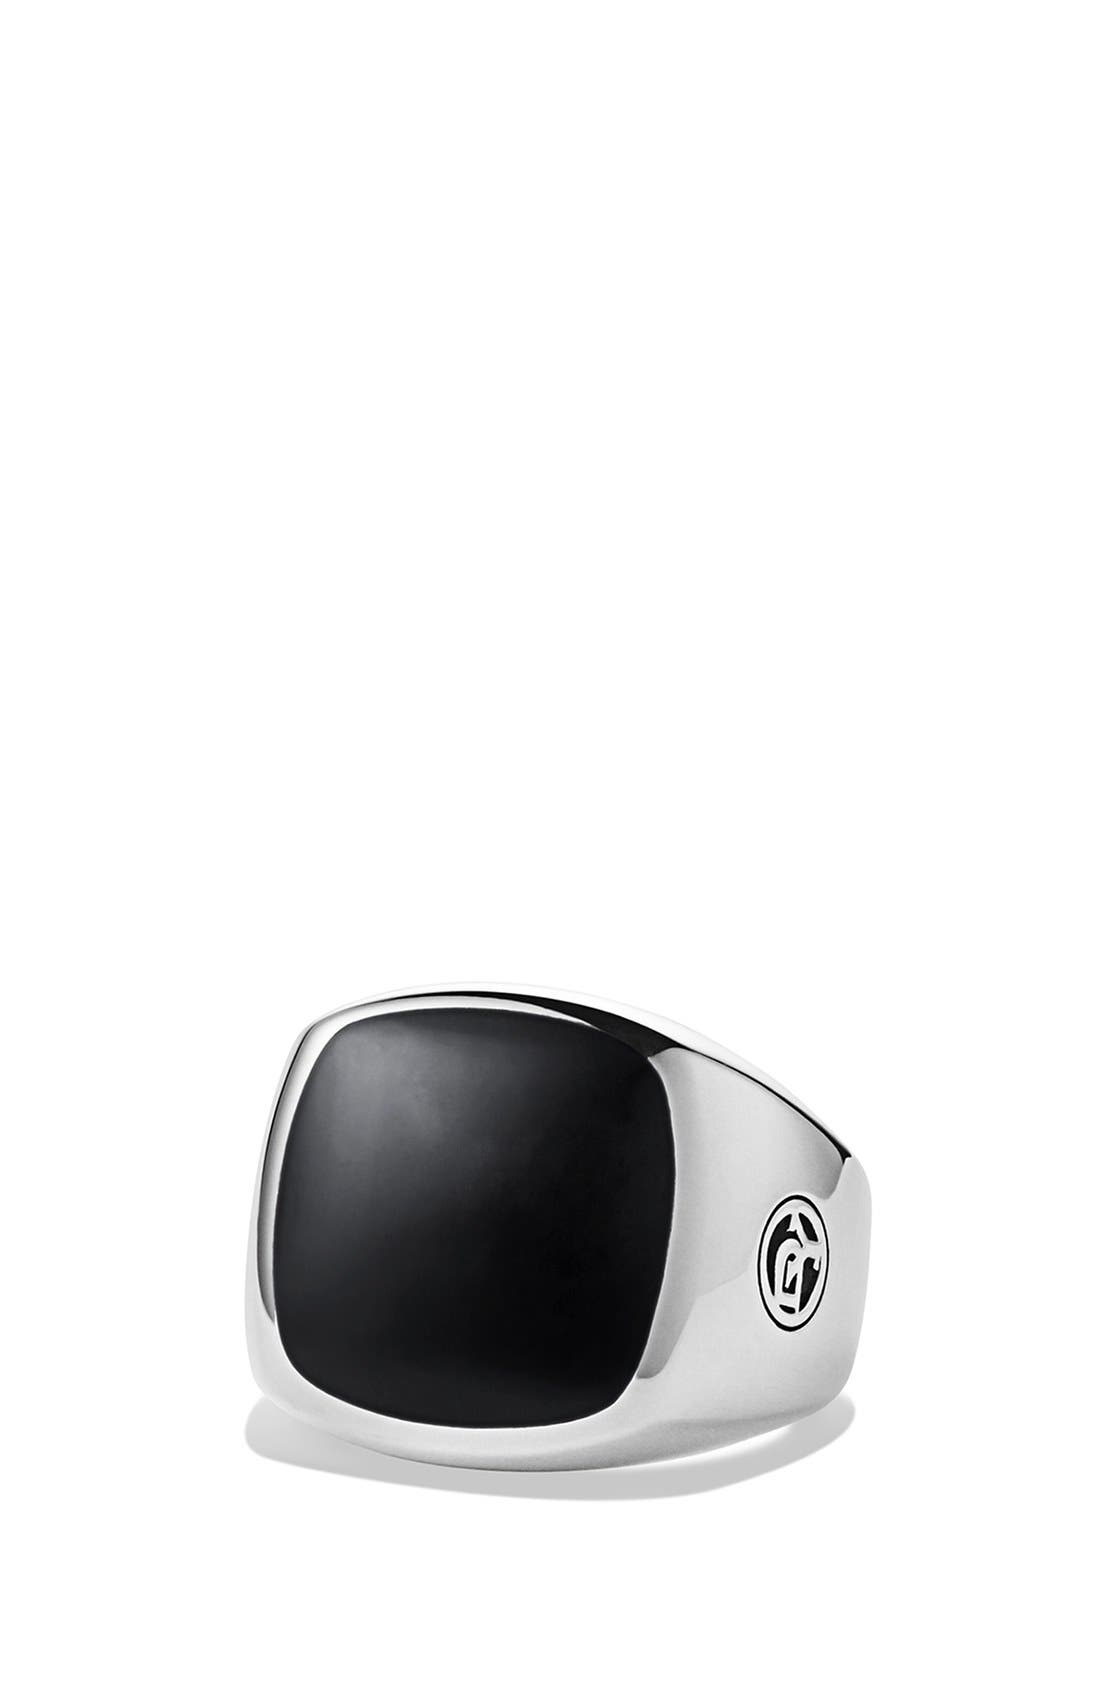 David Yurman 'Chevron' Signet Ring